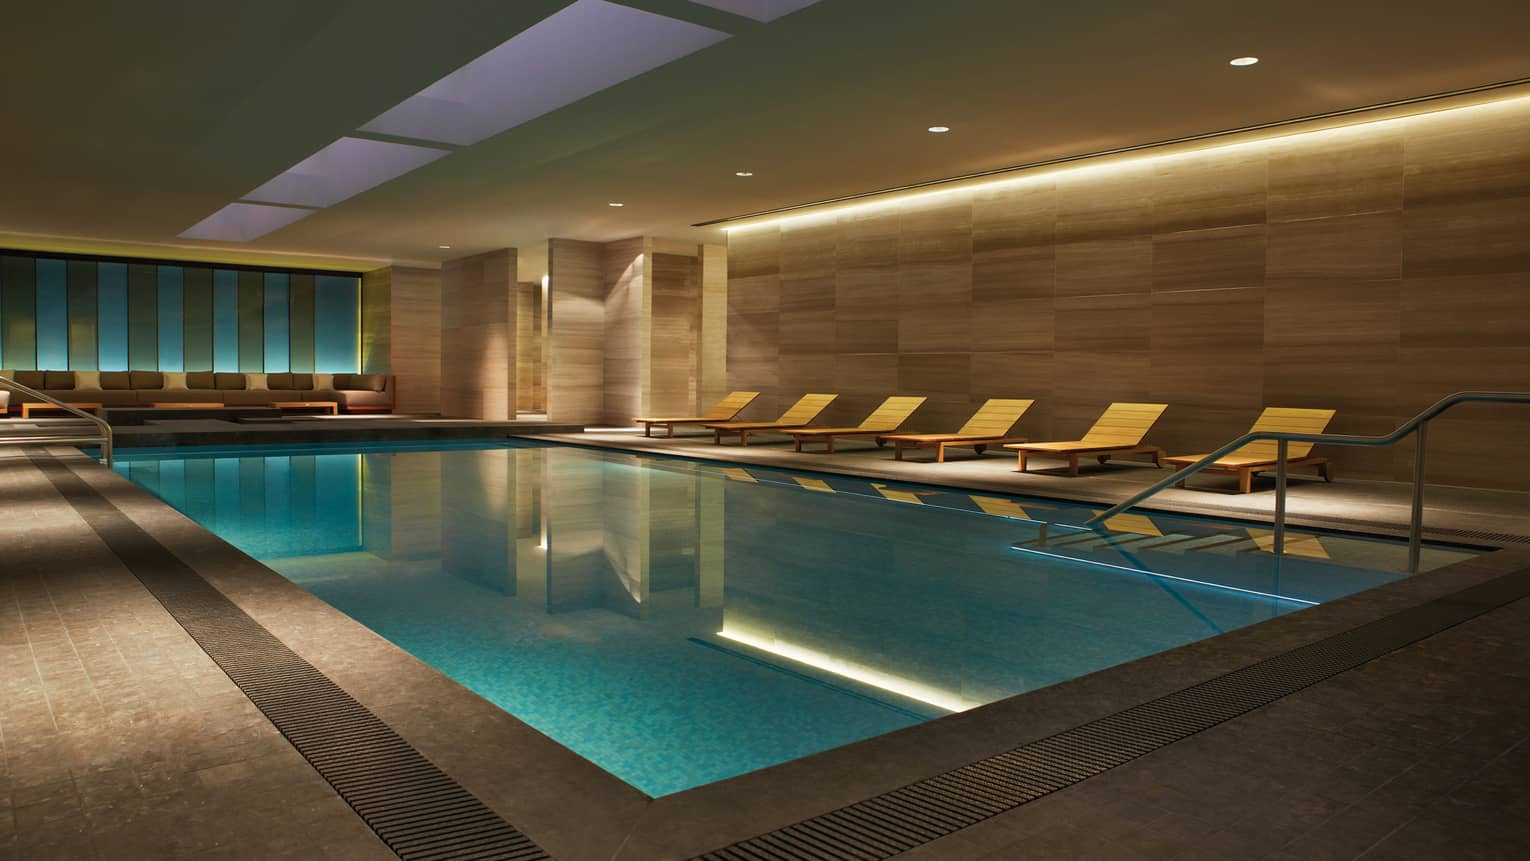 Illuminated indoor swimming pool with wood chairs on deck under granite walls